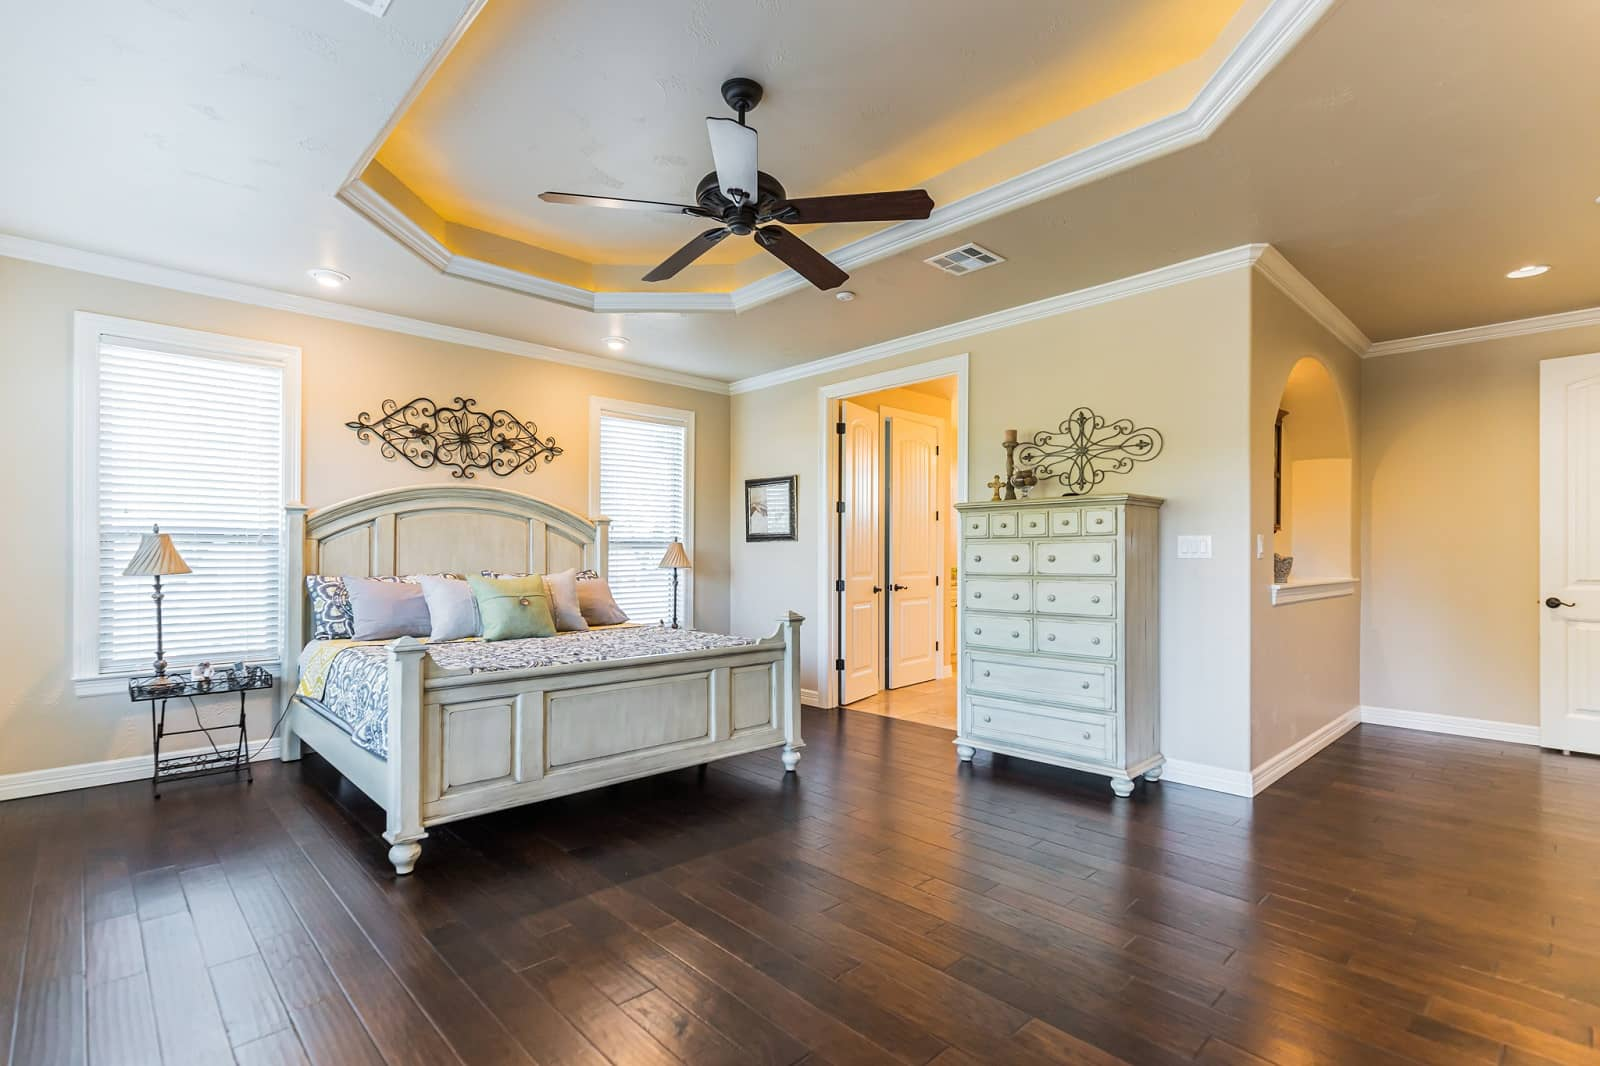 Real Estate Photography in New Braunfels - TX - Bedroom View